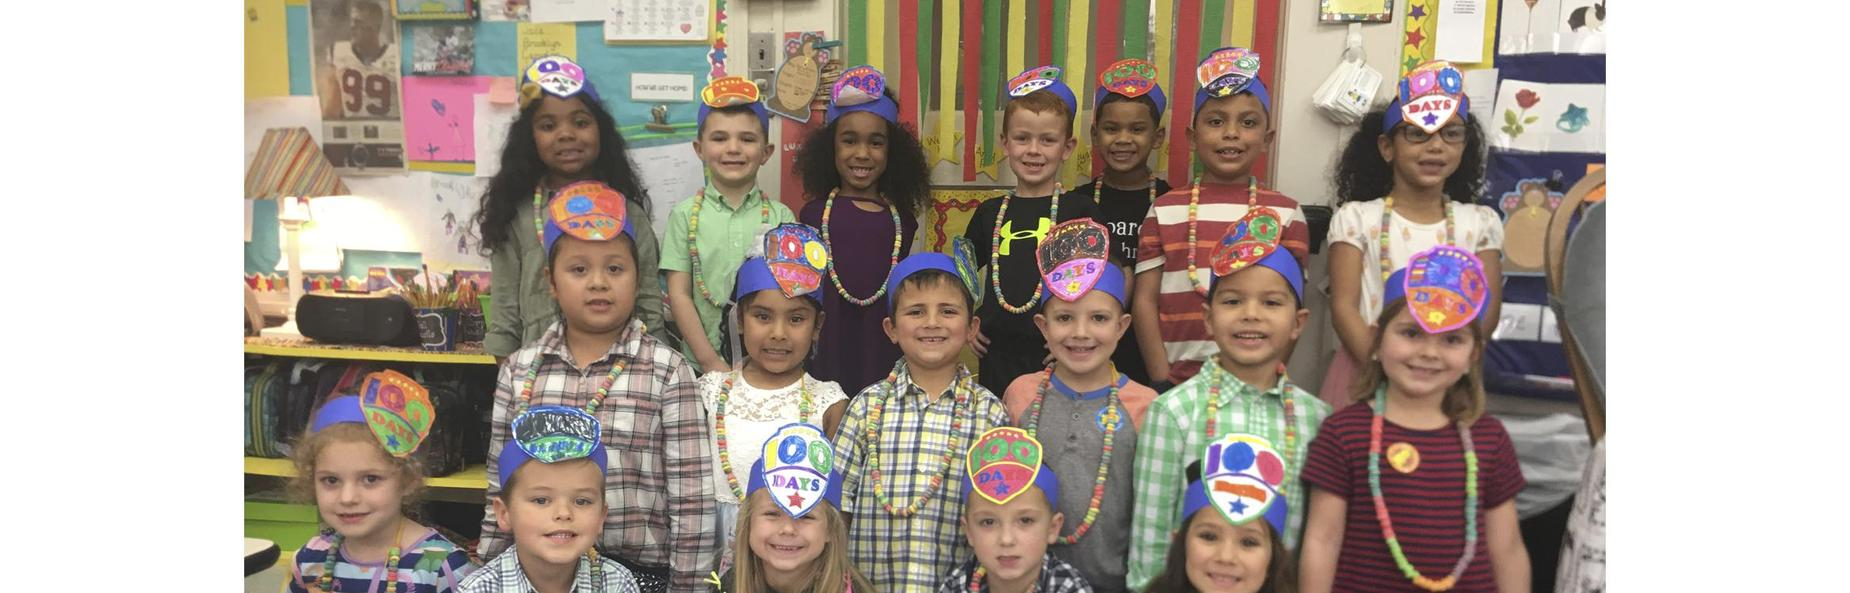 school children wearing hats celebrating one hundred days of school